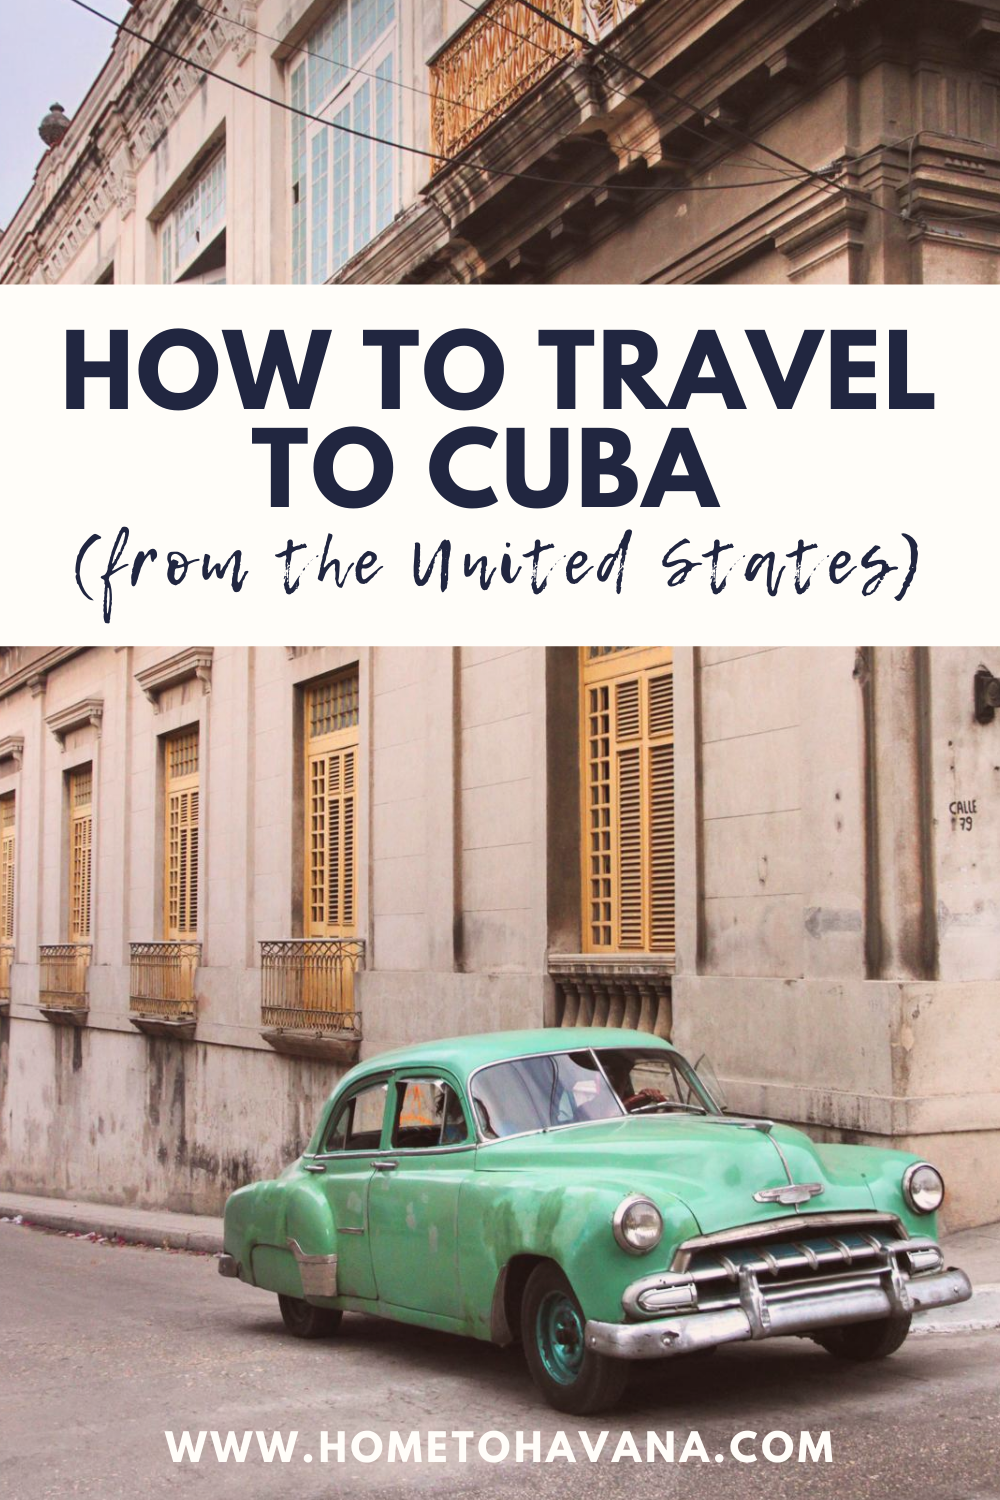 13adb42479beff9ecd2379eb6783f6e7 - How Do You Get To Cuba From The Usa